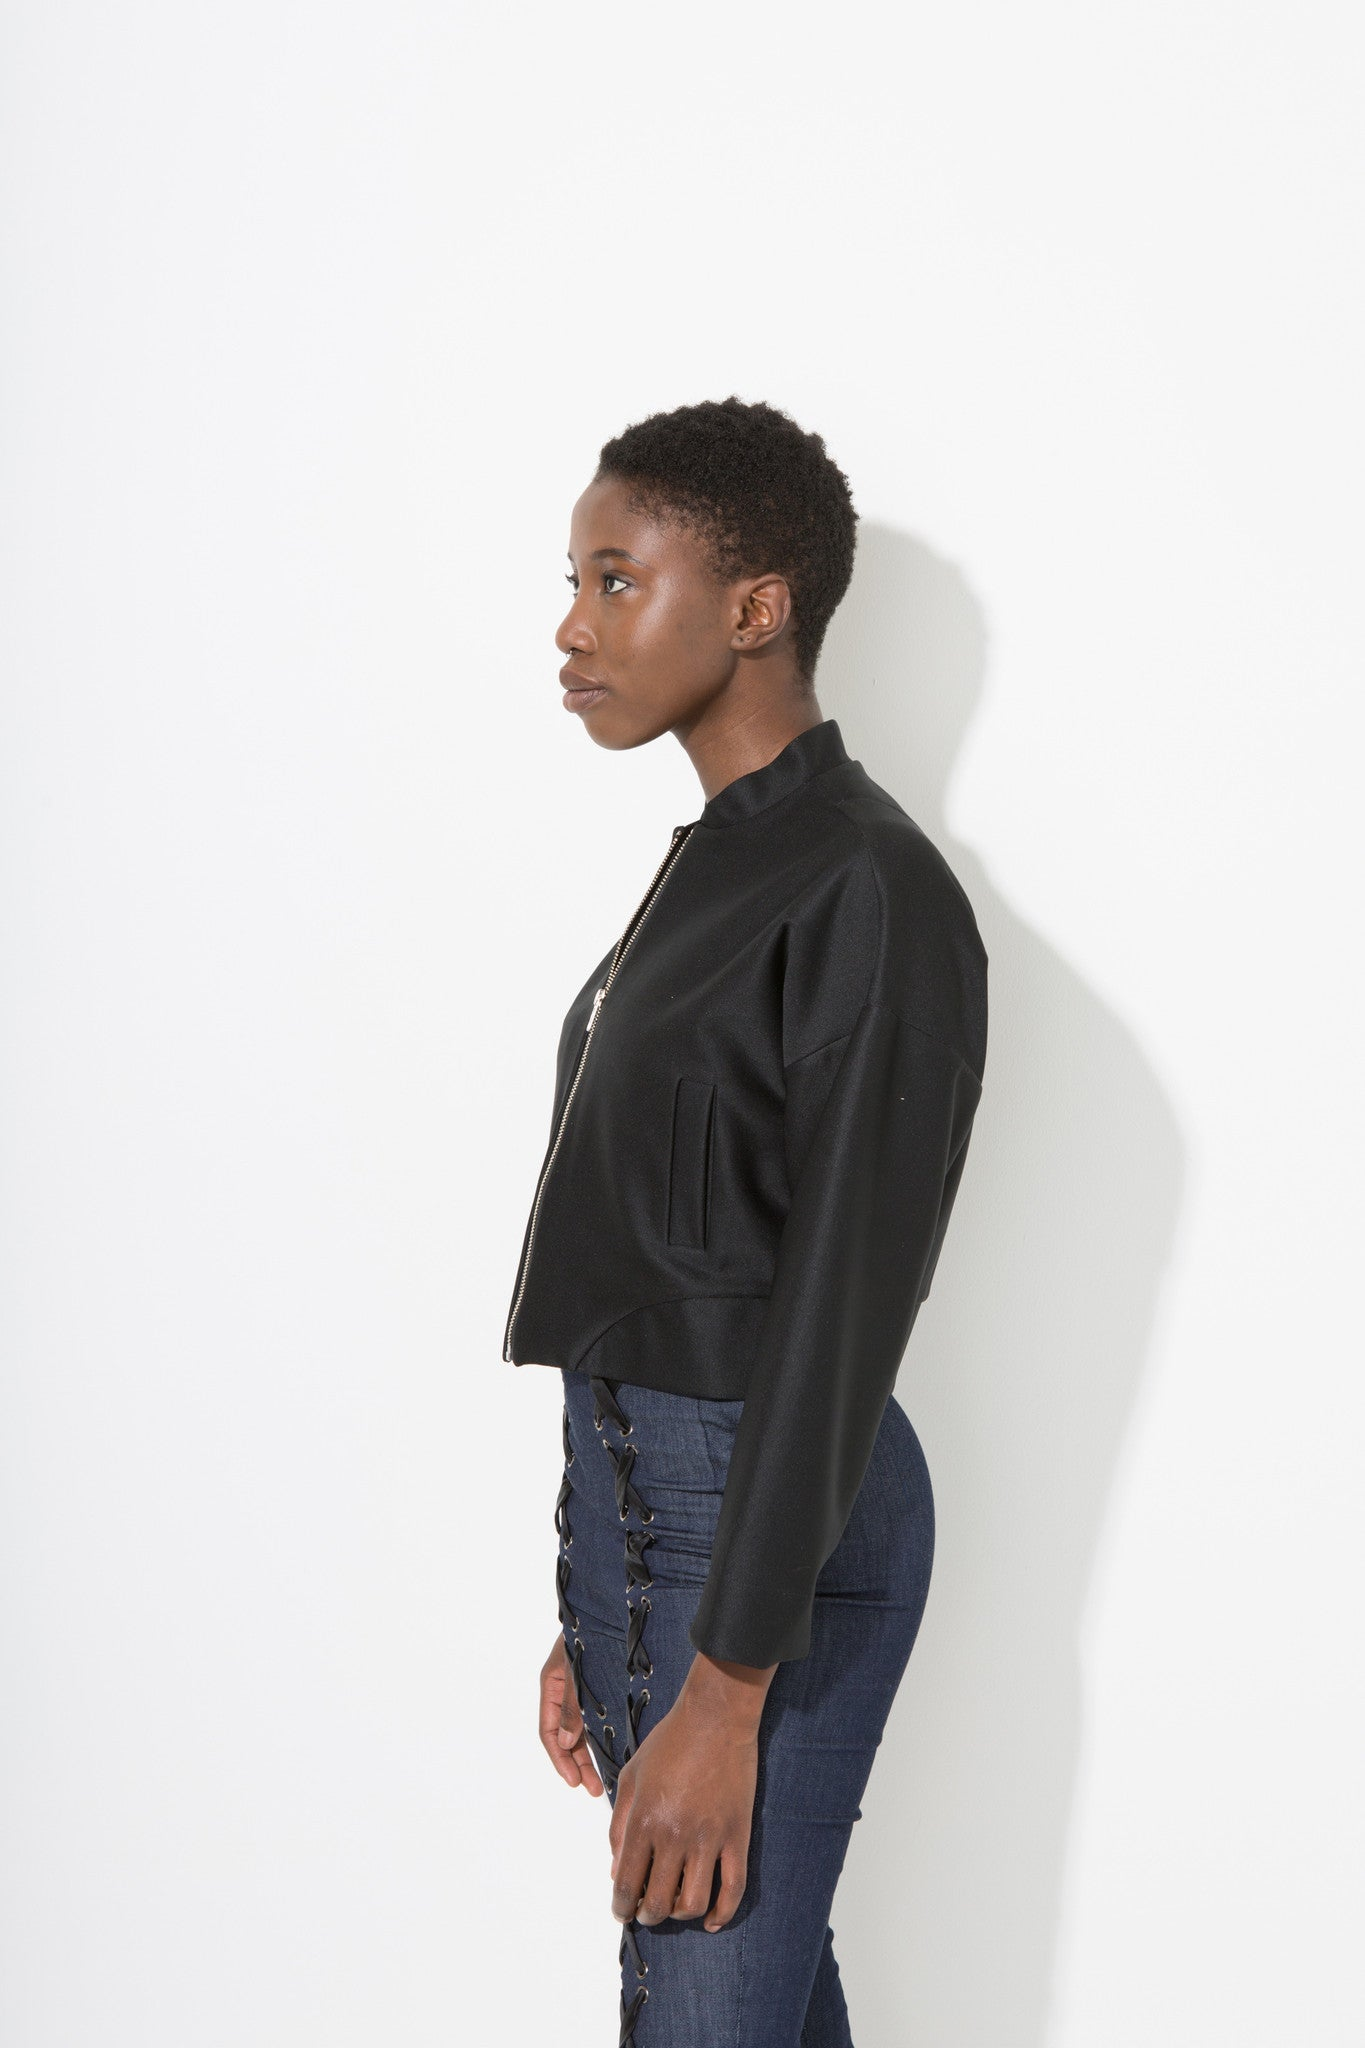 Jeremy Jacket is a short bomber jacket with wide sleeves by Enda